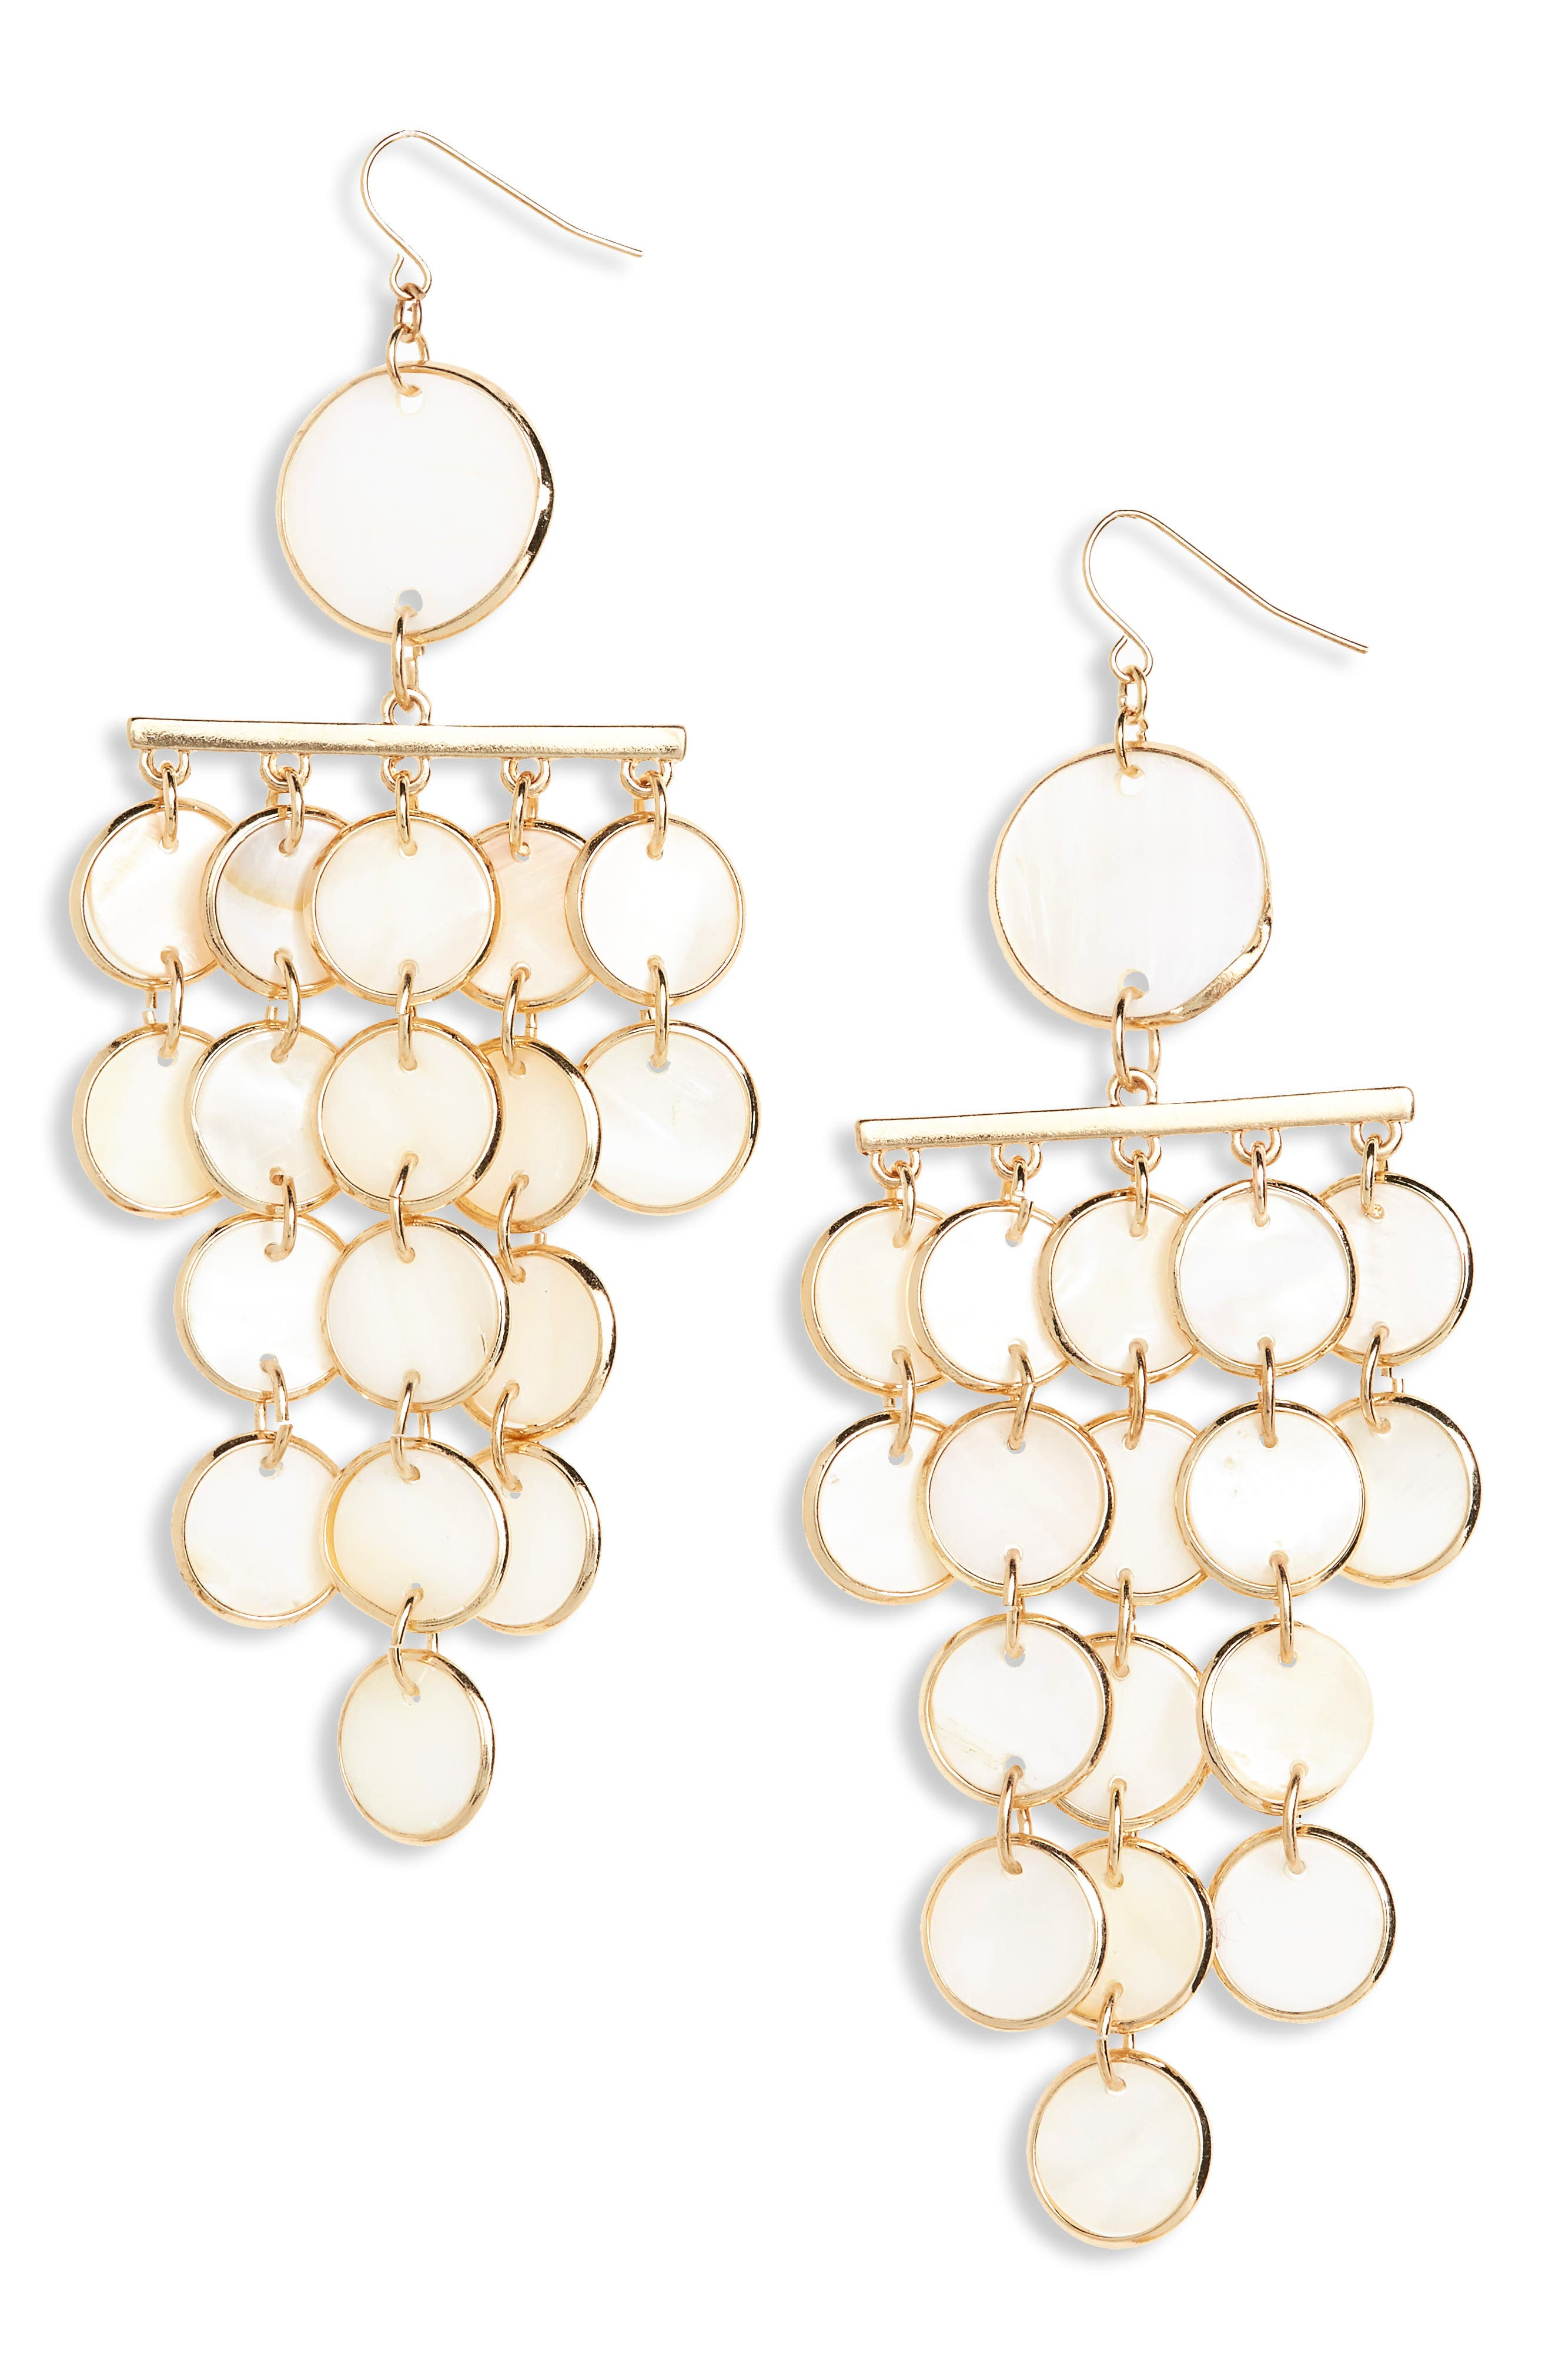 Mother of Pearl Chandelier Earrings,                         Main,                         color, Gold/ Shell